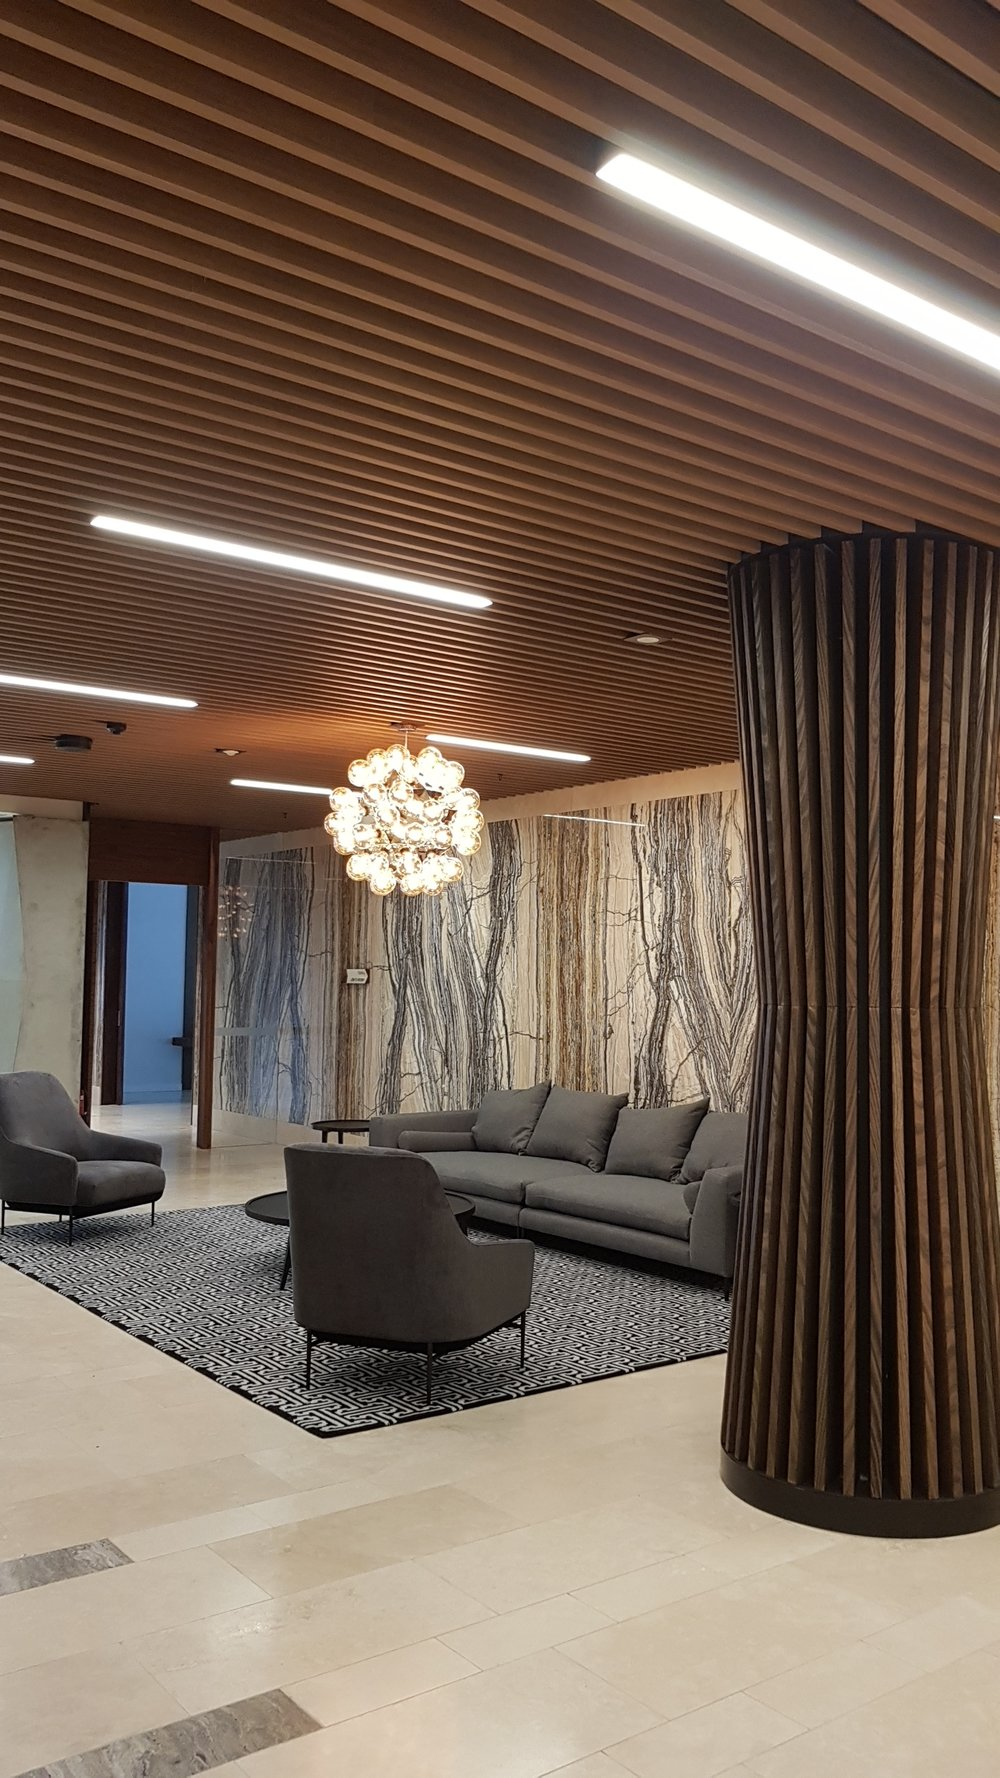 Lakeside Apartments Lobby - Melbourne VIC Ever Art Wood® Kabebari-T Suspended Ceiling System - Kabebari 30x85 battens in Kuri Masame; Custom powdercoated T section in Black